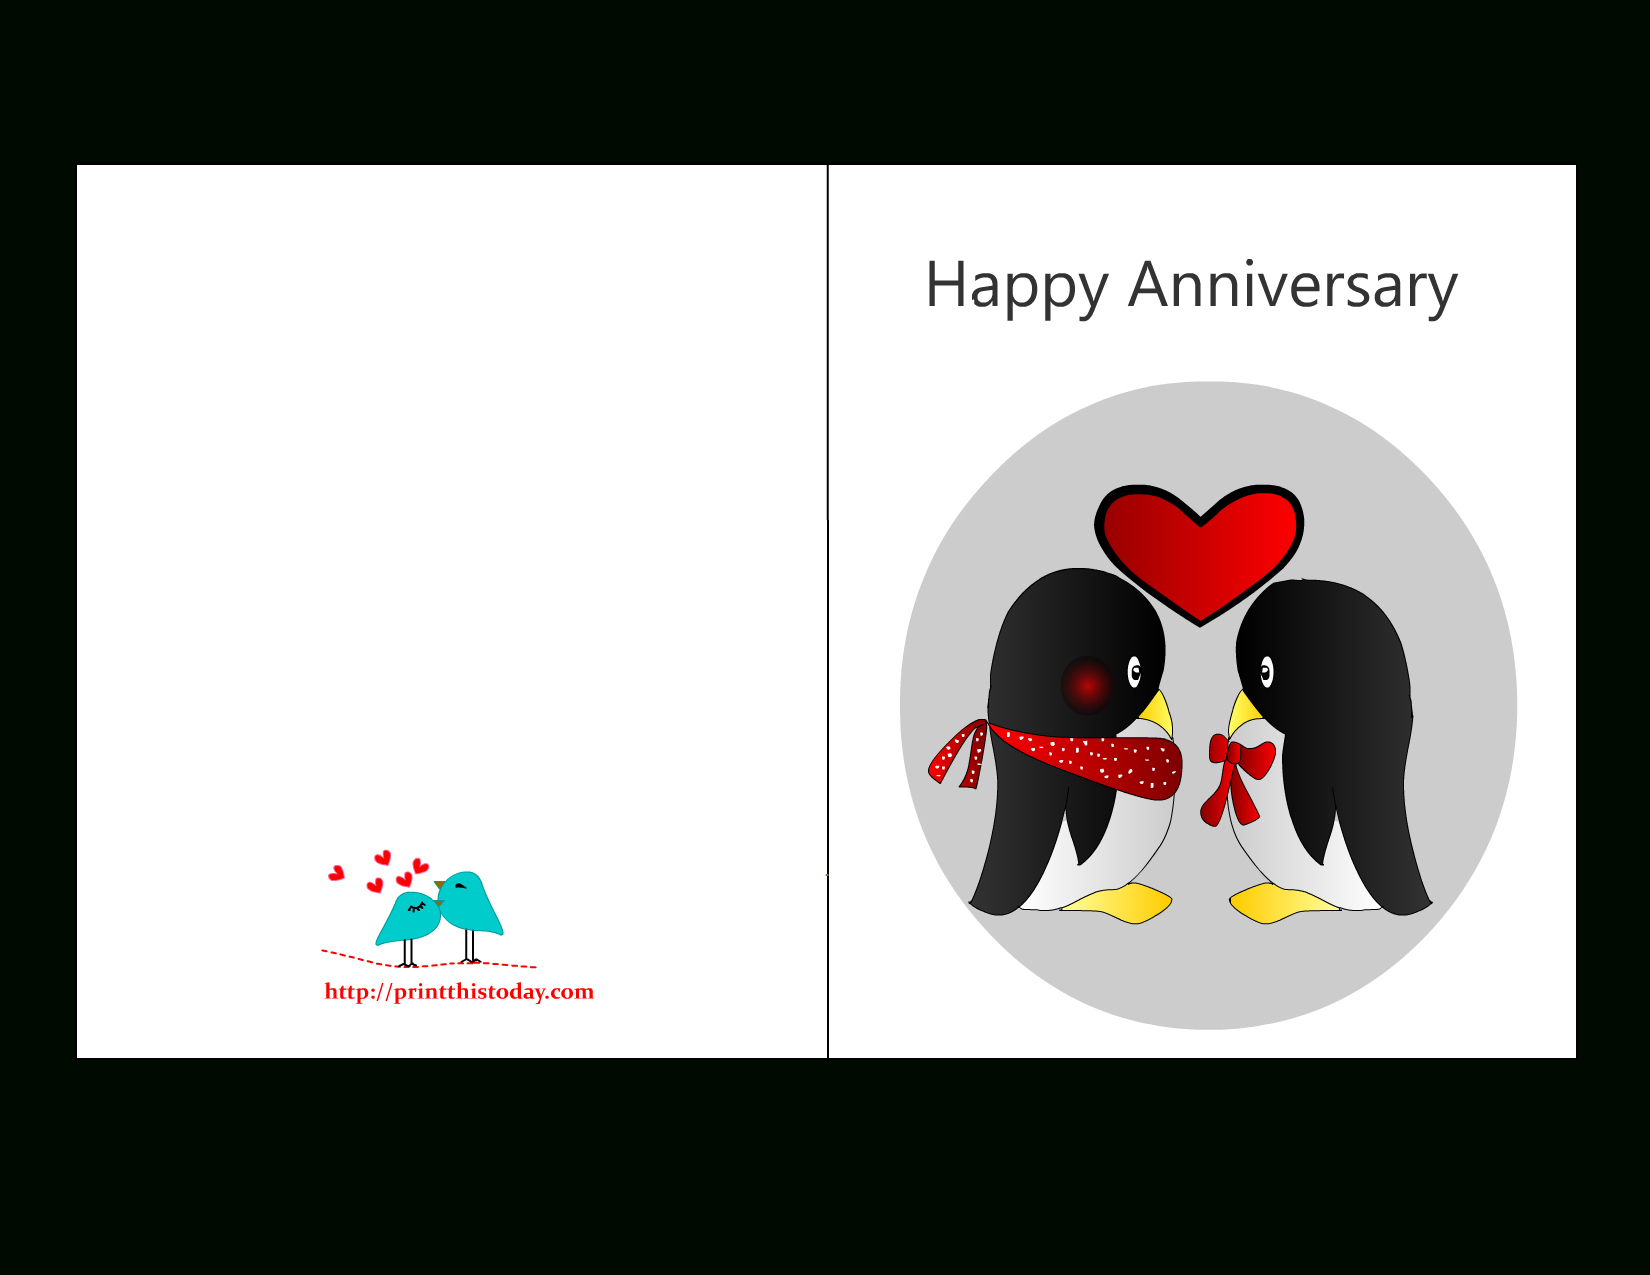 Free Printable Anniversary Cards For Him - Printable Cards - Printable Cards Free Anniversary